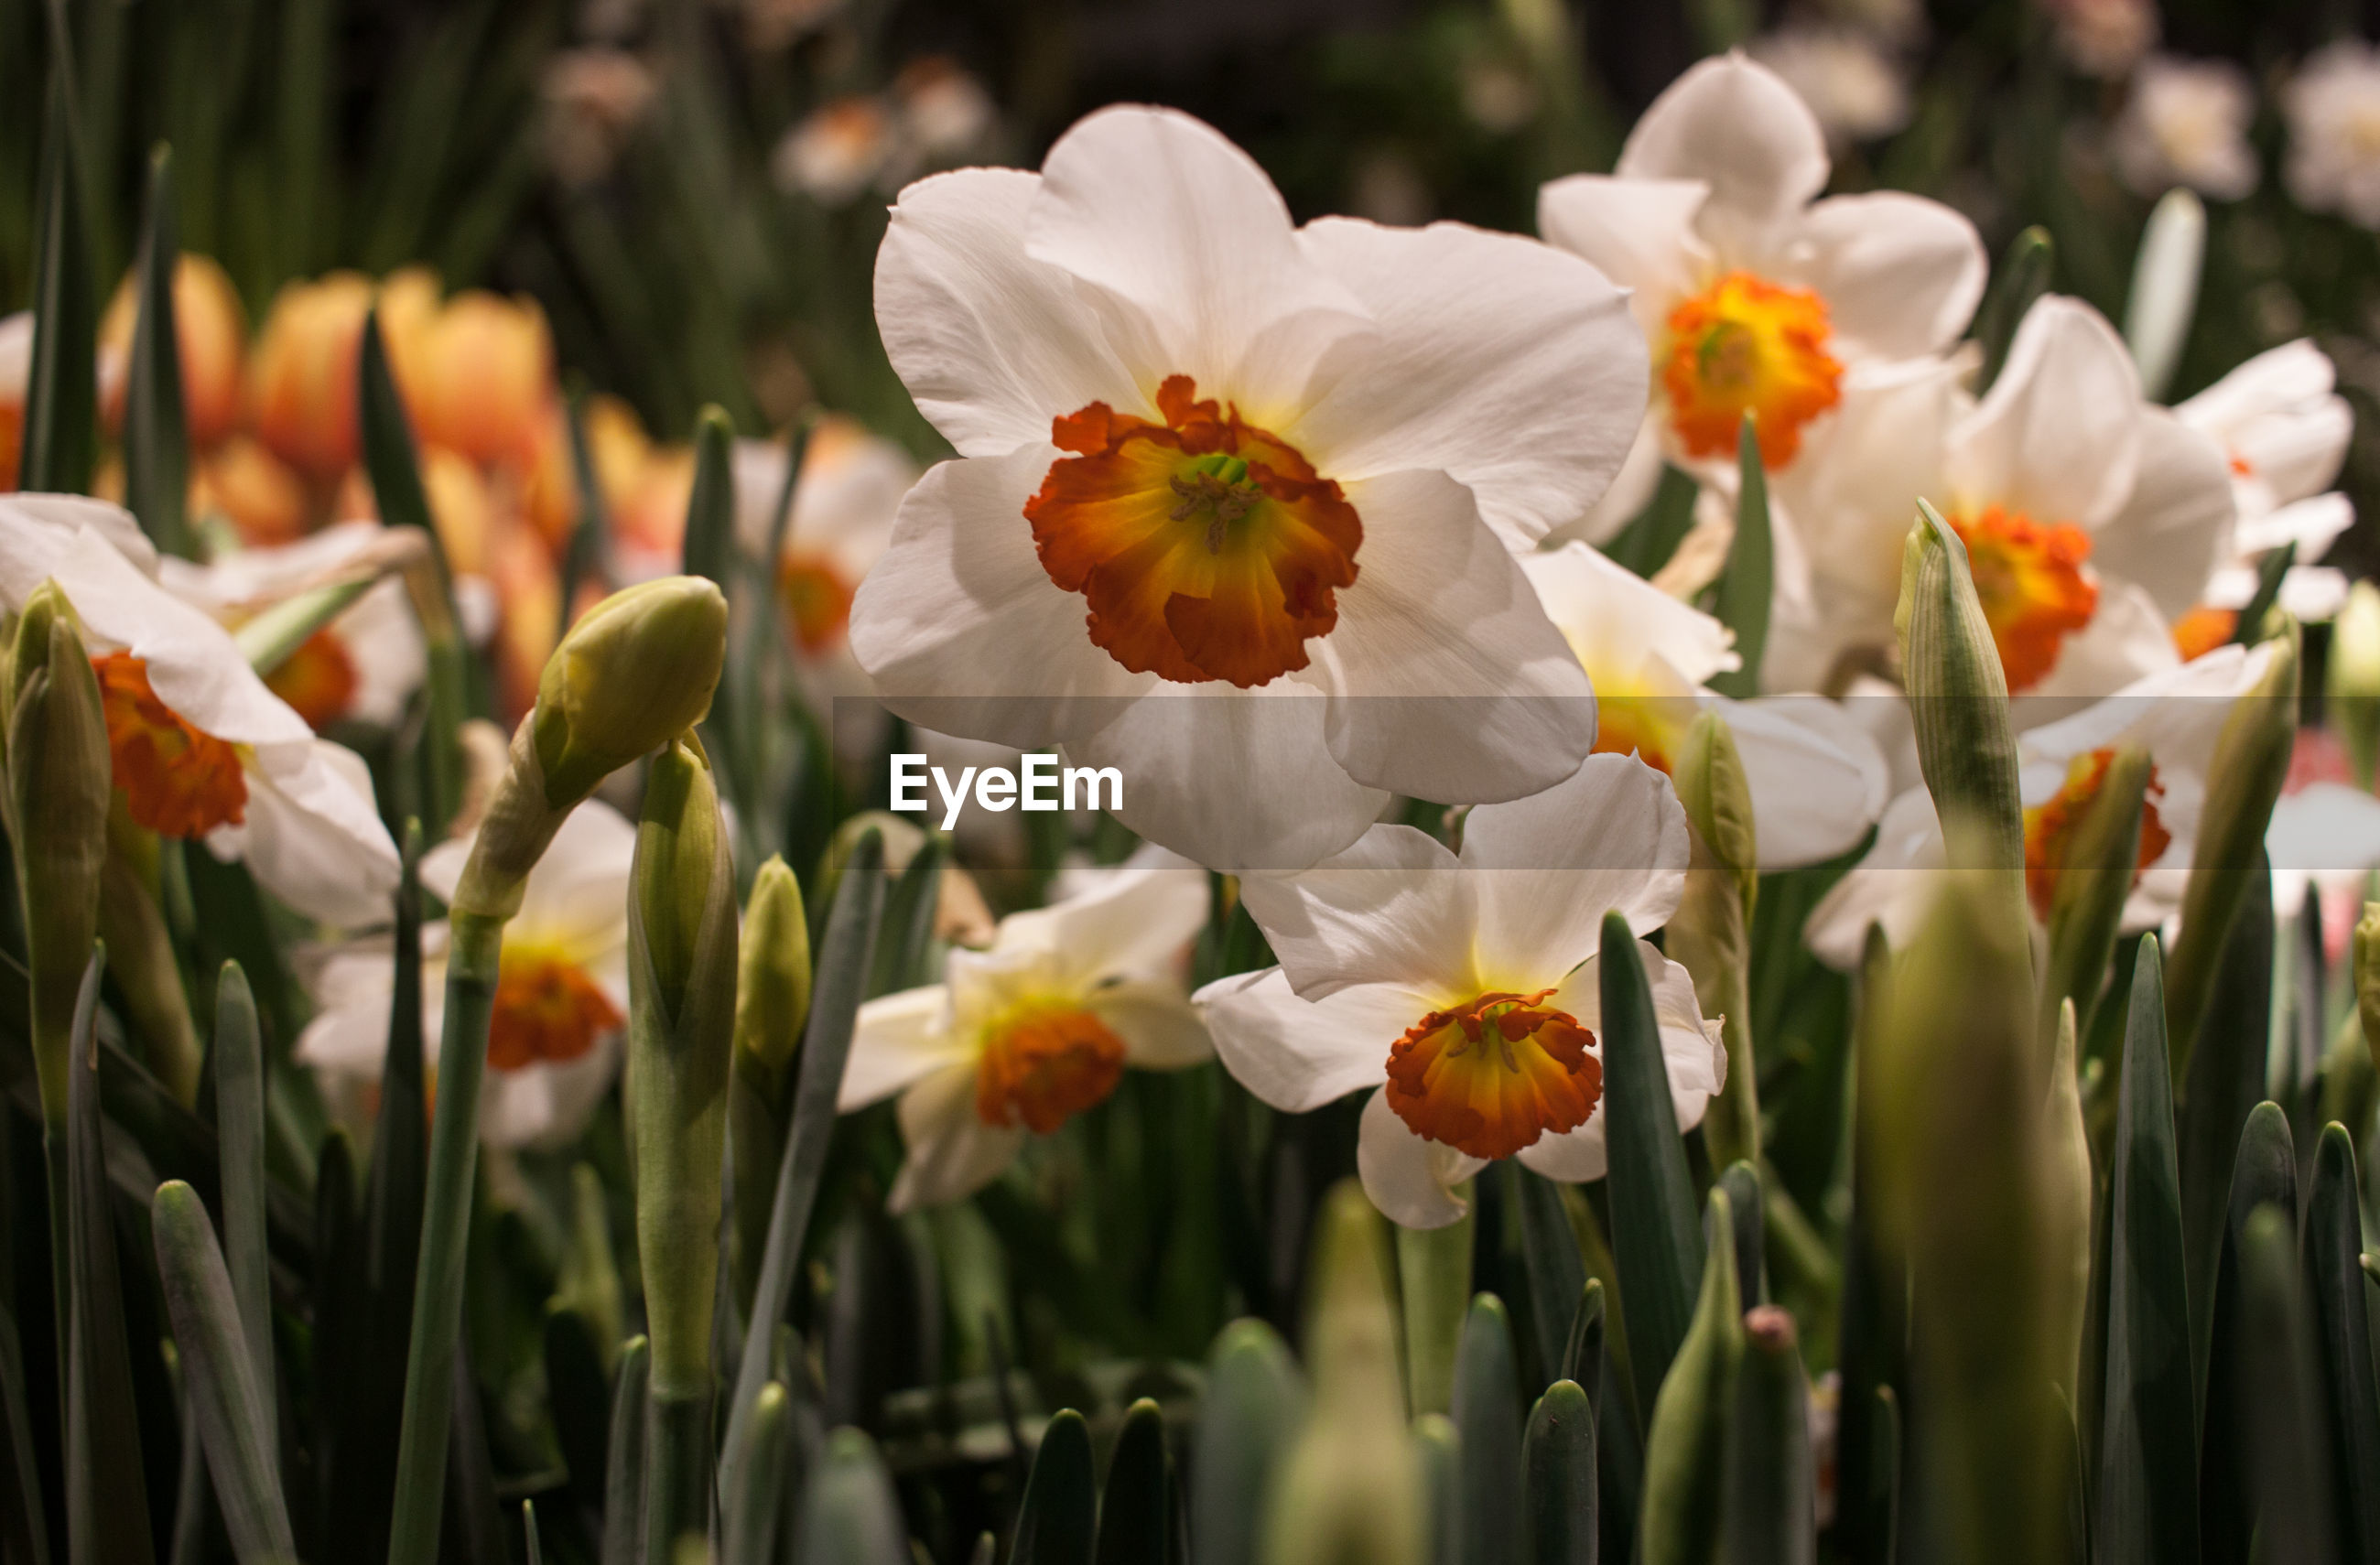 CLOSE-UP OF FRESH WHITE DAFFODIL FLOWERS